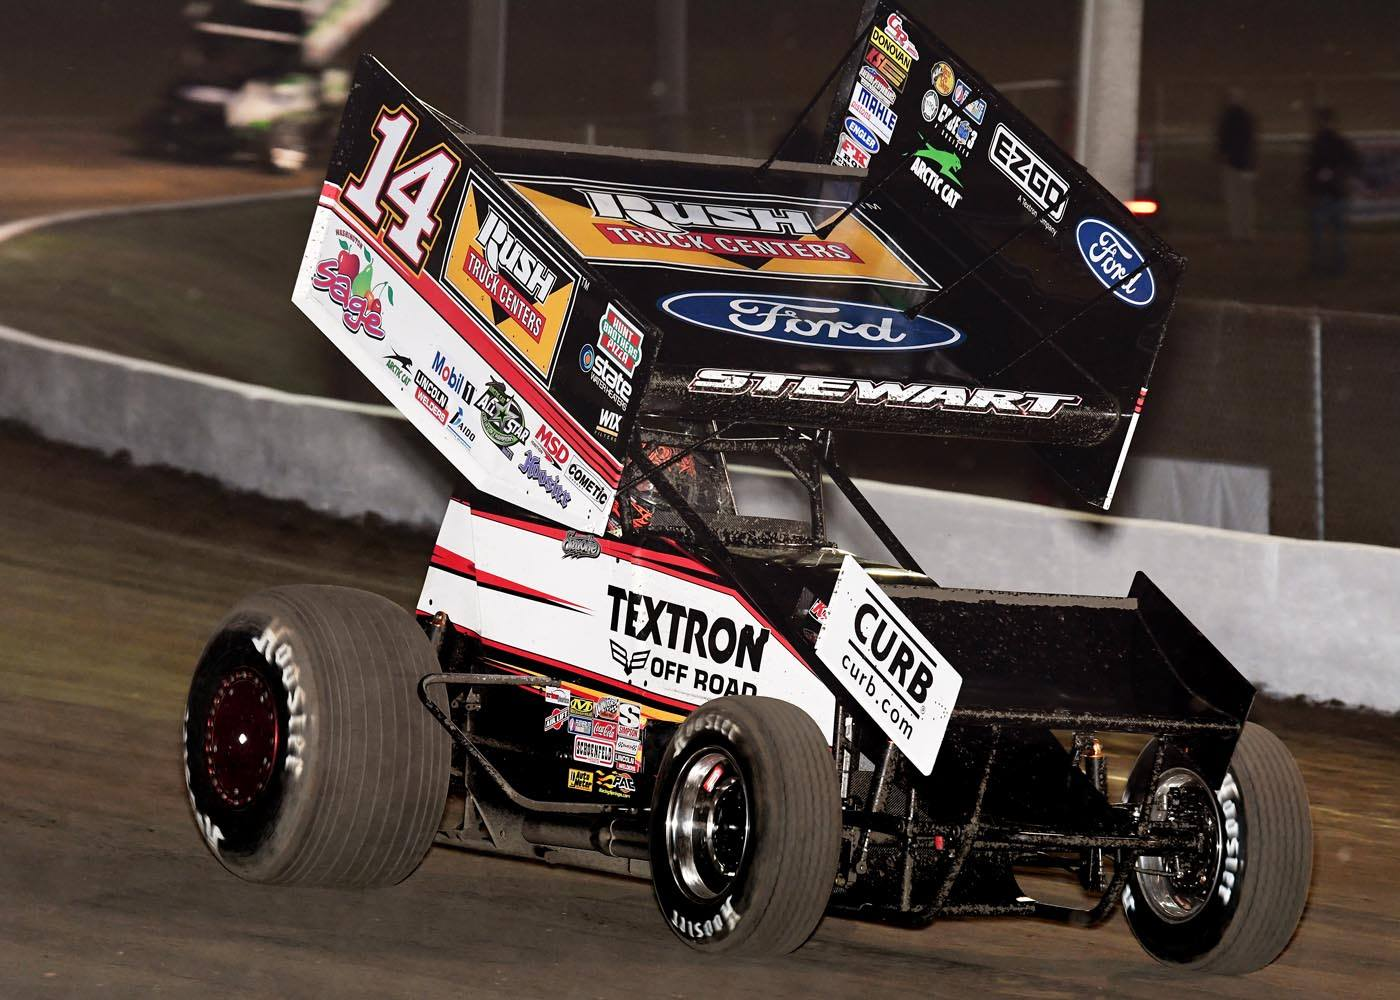 Tony Stewart Racing - Dirt Sprint Car